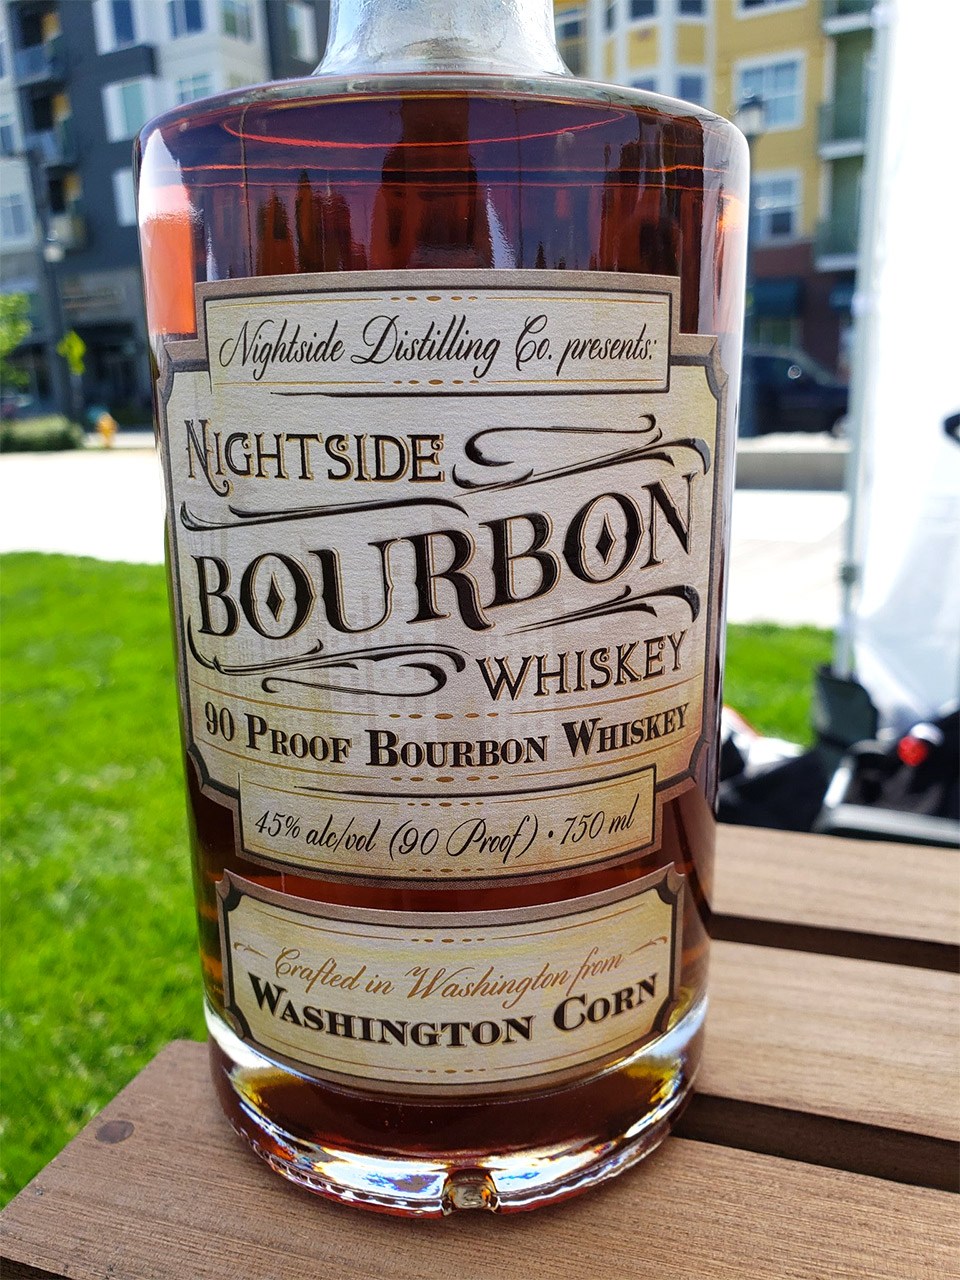 NIghtside Bourbon Whiskey